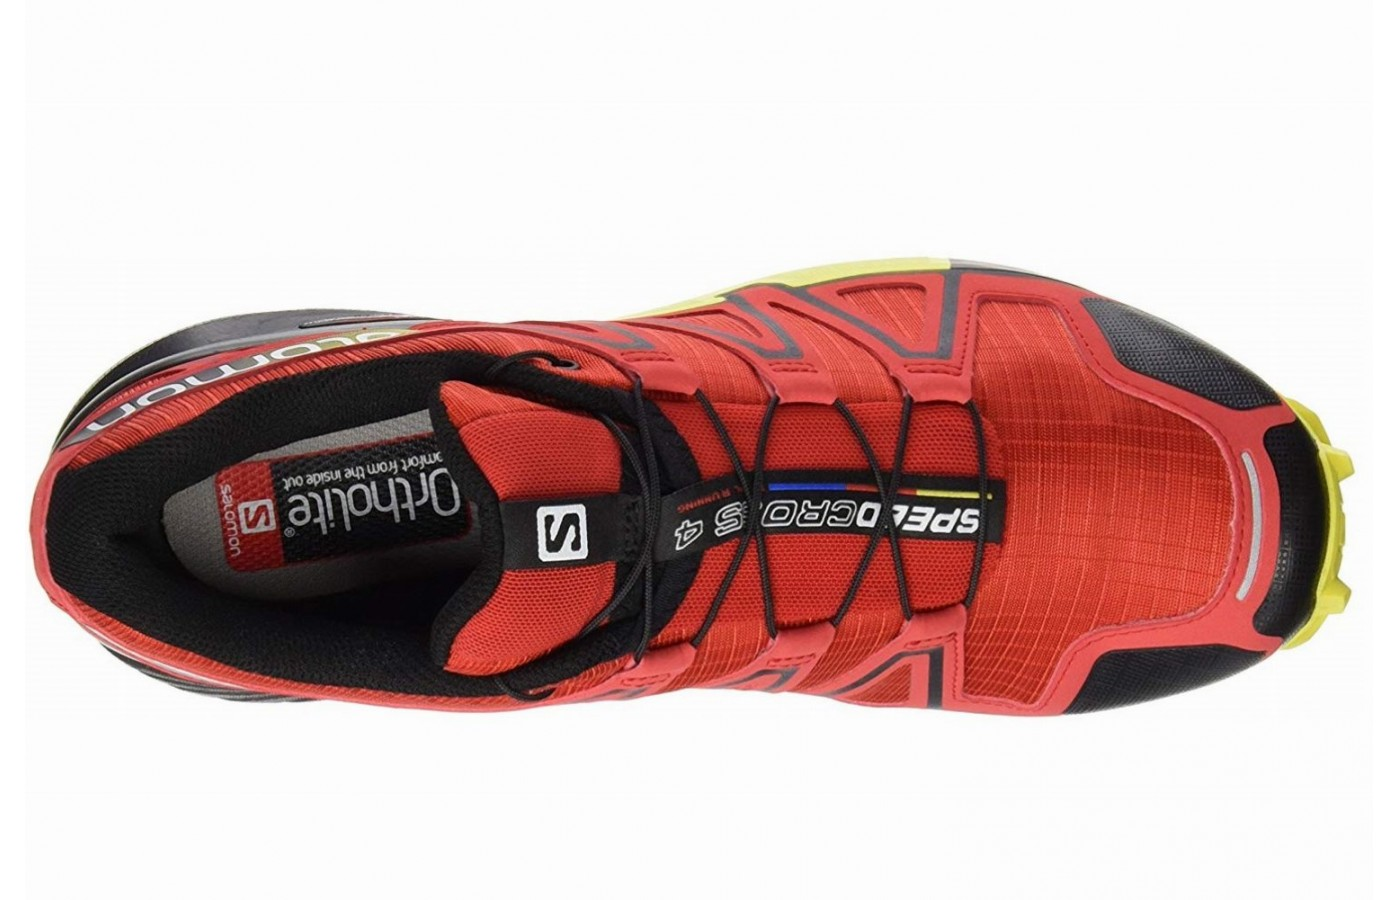 Salomon Speedcross 4 Top View